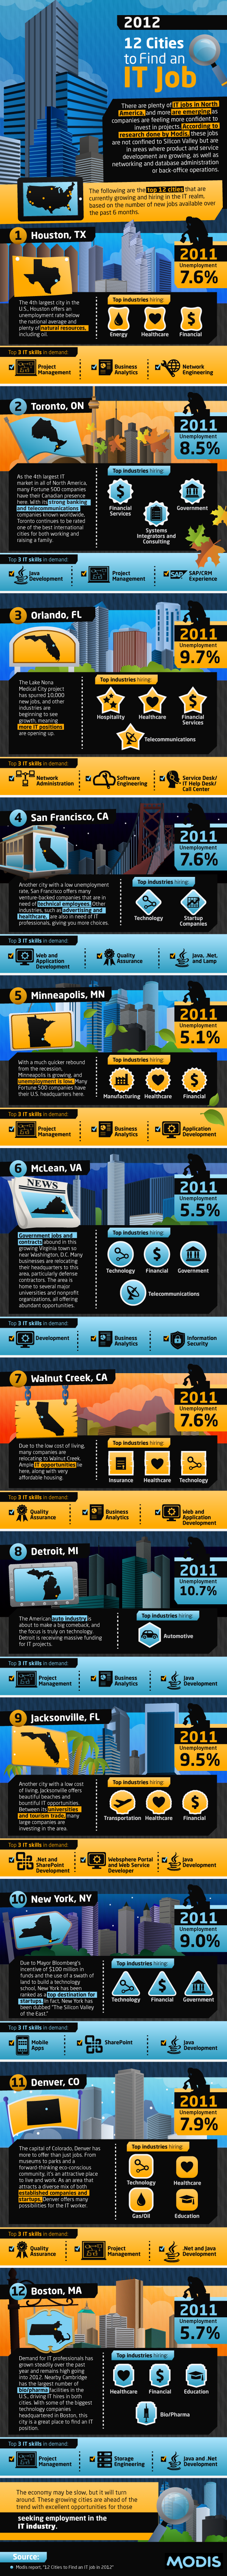 12 Cities To Find An IT Job In 2012